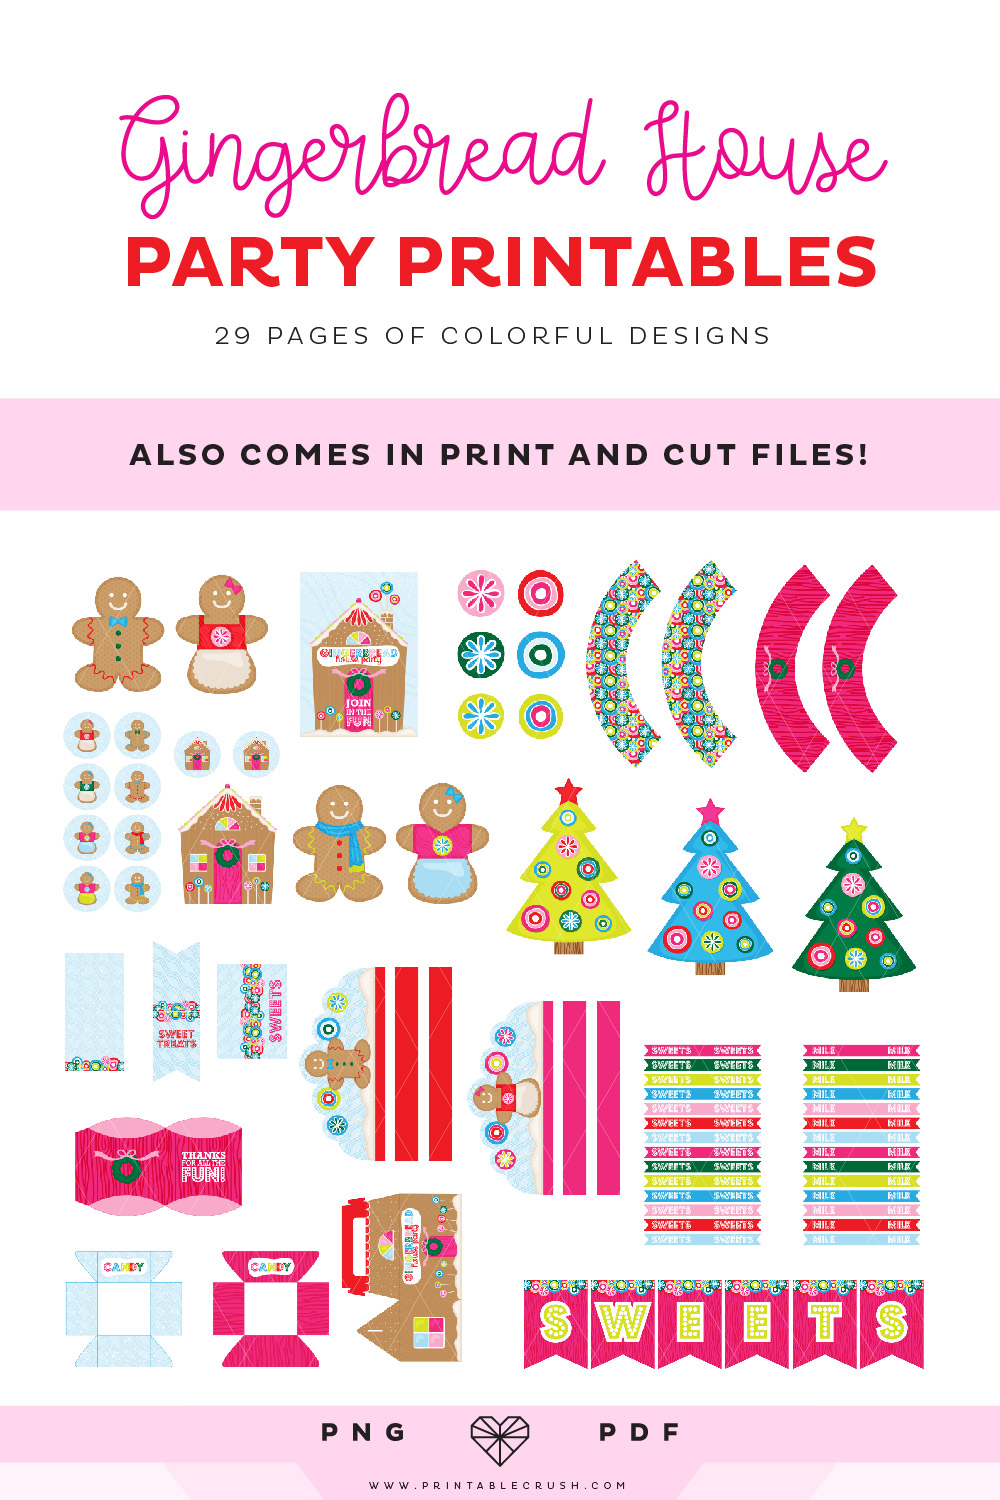 These Gingerbread Party Printables are the CUTEST! Includes 29 pages of cupcake toppers, treat boxes, invitations, and more. You can also upload these to Cricut Design Space and use the print and cut feature!